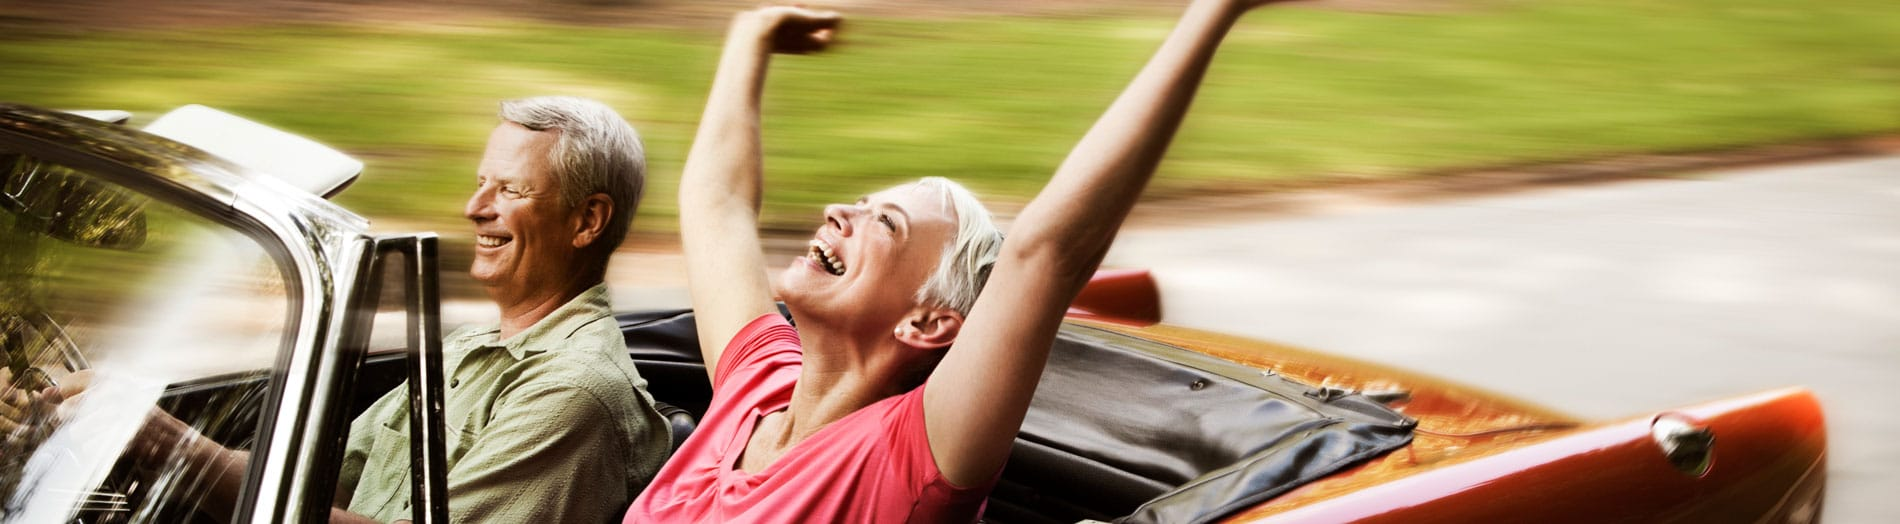 Laughing elderly couple in a red convertible - woman with her hands in the air